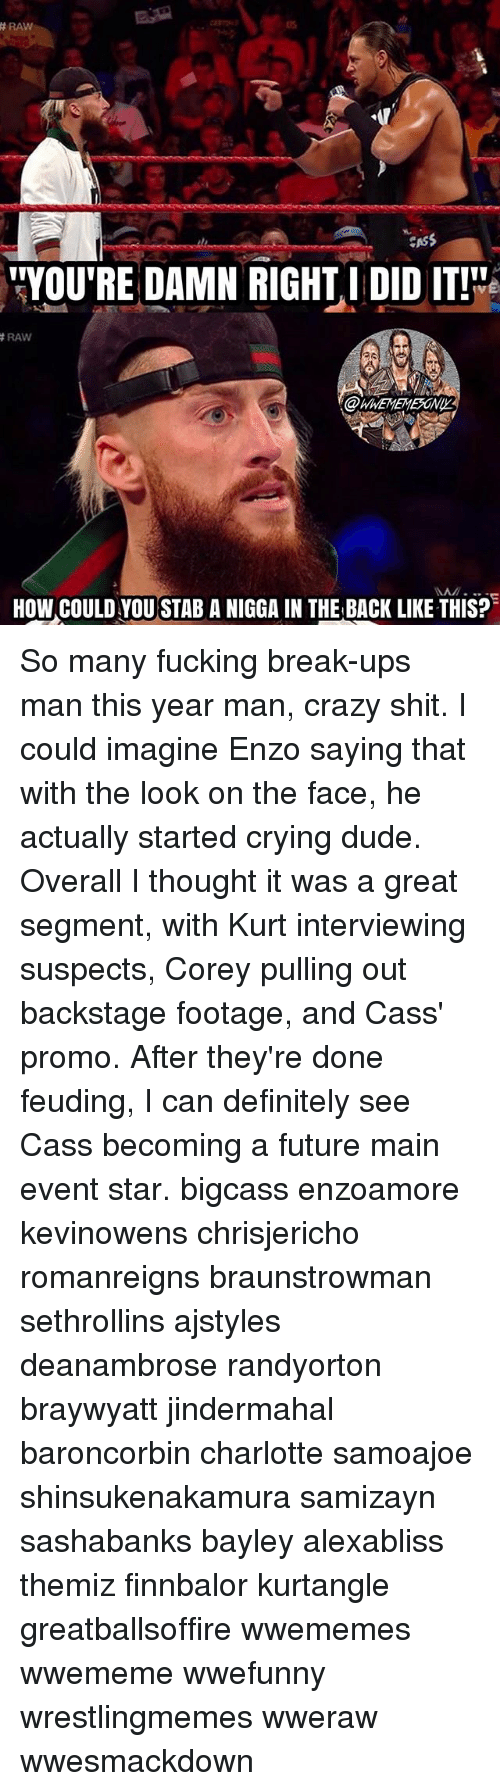 "Crazy, Crying, and Definitely: RAW  CASS  ""YOU'RE DAMN RIGHT I DID IT!  RAW  HOW COULD YOU STAB A NIGGA IN THE BACK LIKE THIS? So many fucking break-ups man this year man, crazy shit. I could imagine Enzo saying that with the look on the face, he actually started crying dude. Overall I thought it was a great segment, with Kurt interviewing suspects, Corey pulling out backstage footage, and Cass' promo. After they're done feuding, I can definitely see Cass becoming a future main event star. bigcass enzoamore kevinowens chrisjericho romanreigns braunstrowman sethrollins ajstyles deanambrose randyorton braywyatt jindermahal baroncorbin charlotte samoajoe shinsukenakamura samizayn sashabanks bayley alexabliss themiz finnbalor kurtangle greatballsoffire wwememes wwememe wwefunny wrestlingmemes wweraw wwesmackdown"